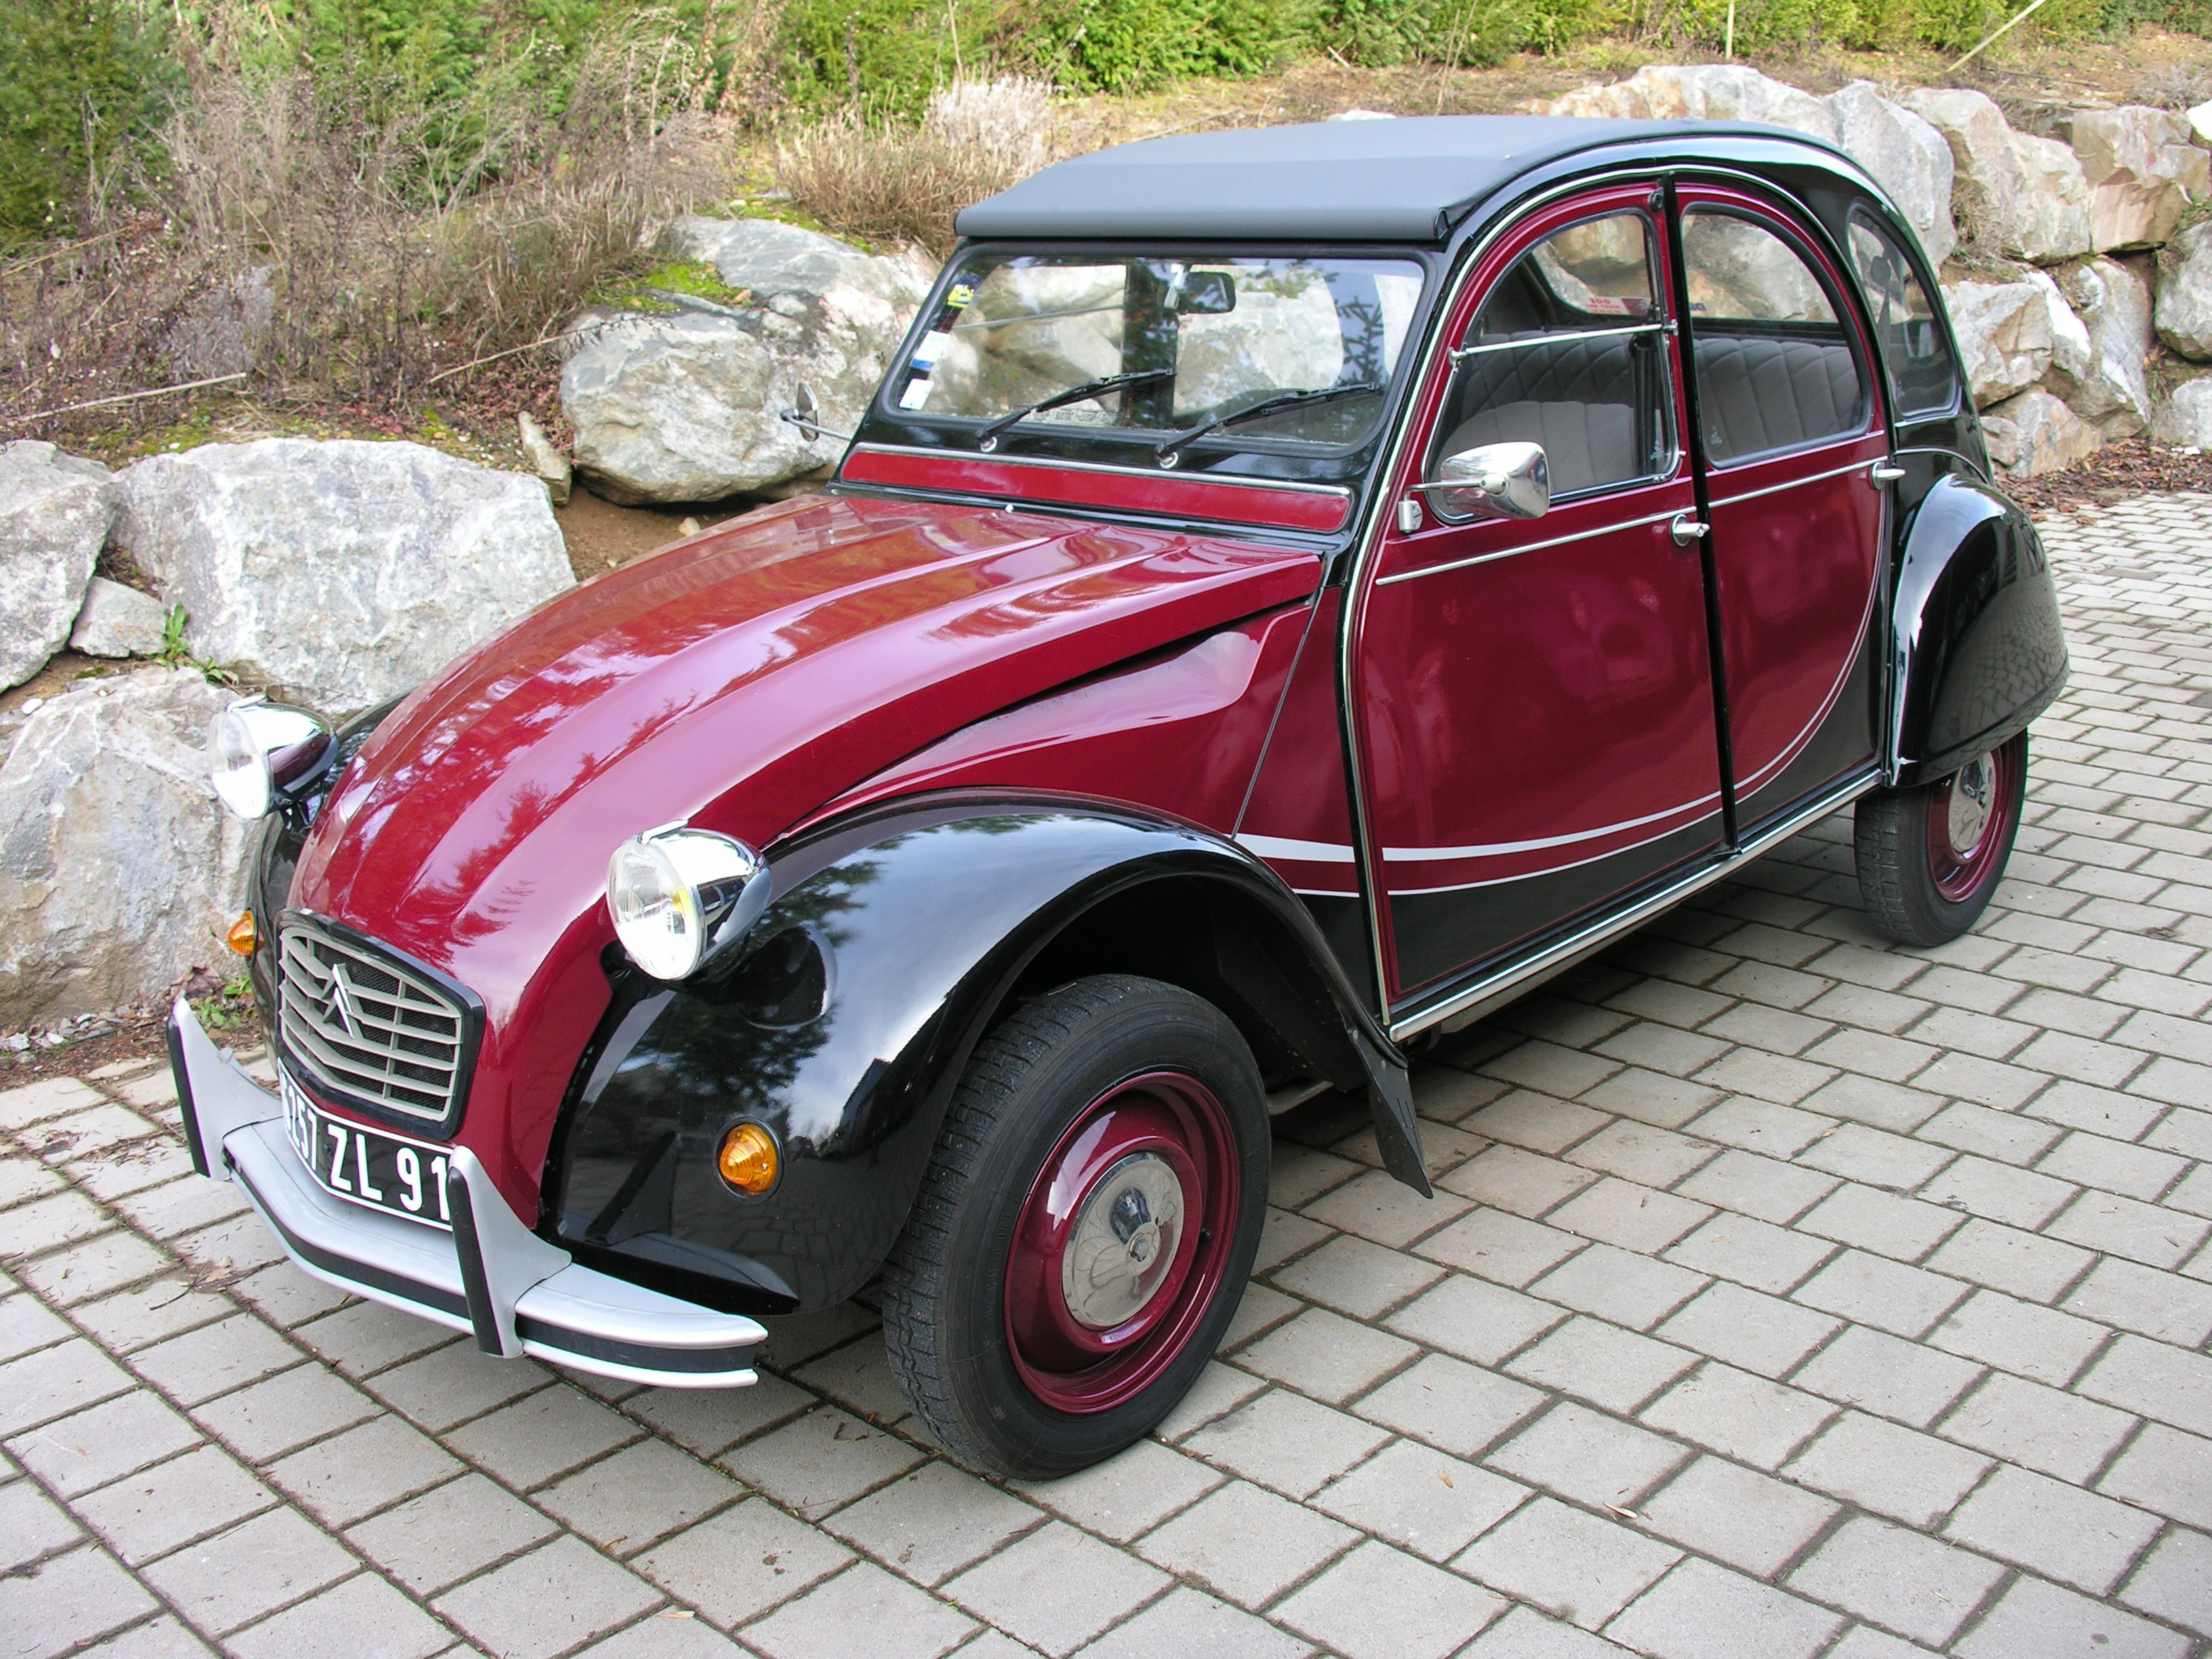 pi ces d tach es 2cv et mehari location 2cv avec chauffeur ami de la 2cv. Black Bedroom Furniture Sets. Home Design Ideas